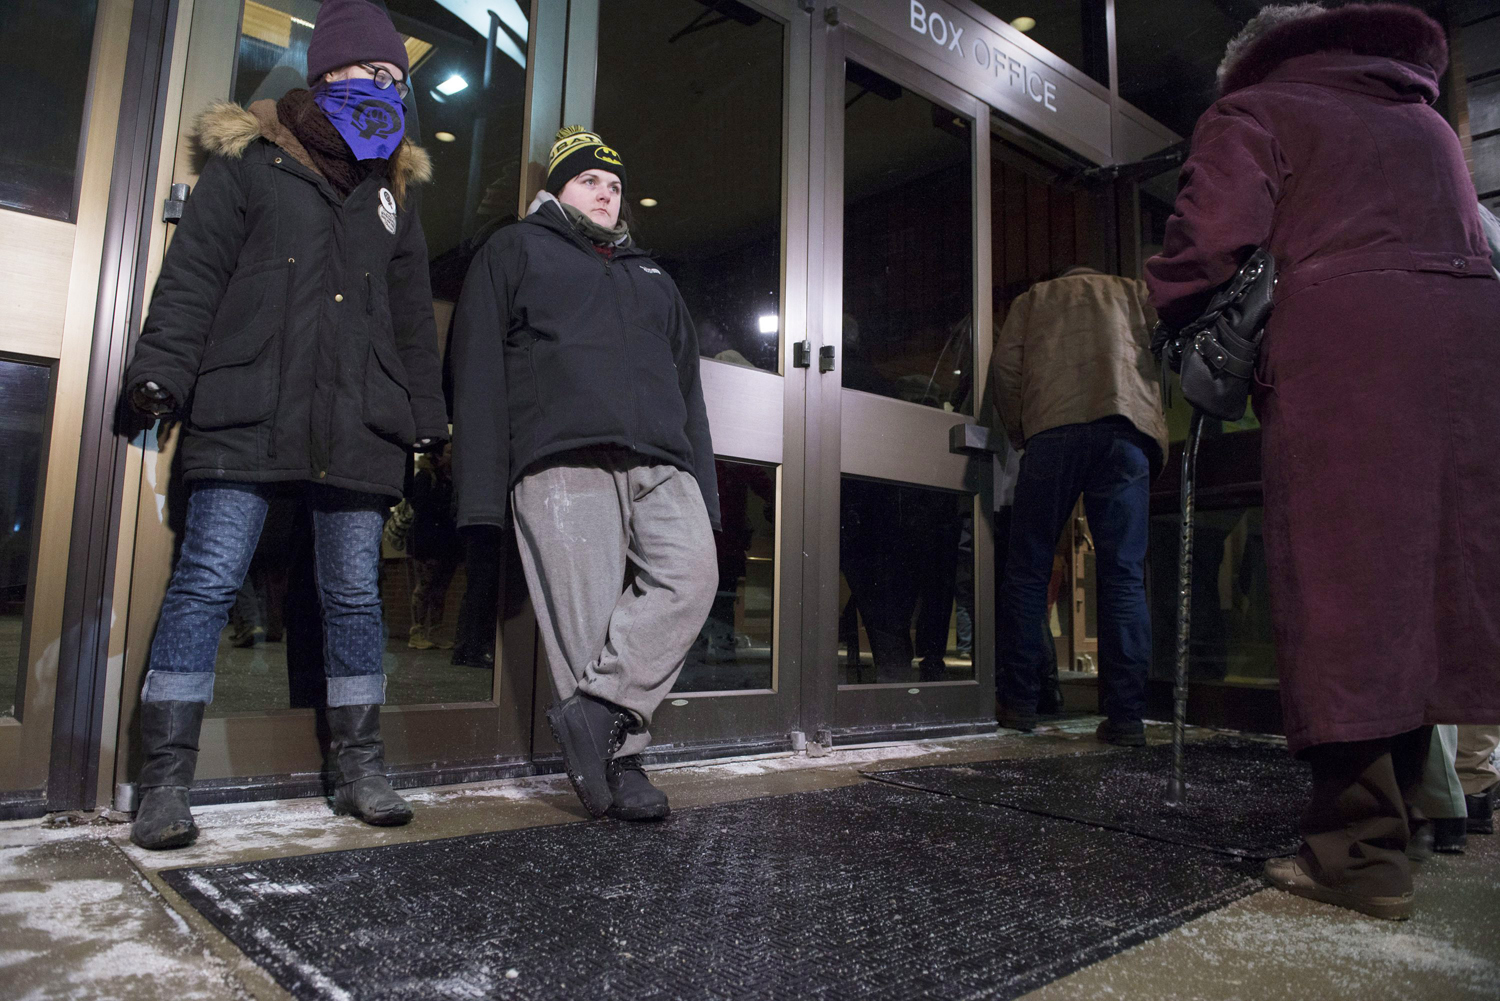 Protesters stand against doors at the entrance to the Centre in the Square theater in Kitchener, Ontario, Canada on Jan. 7, 2015 to protest Bill Cosby.